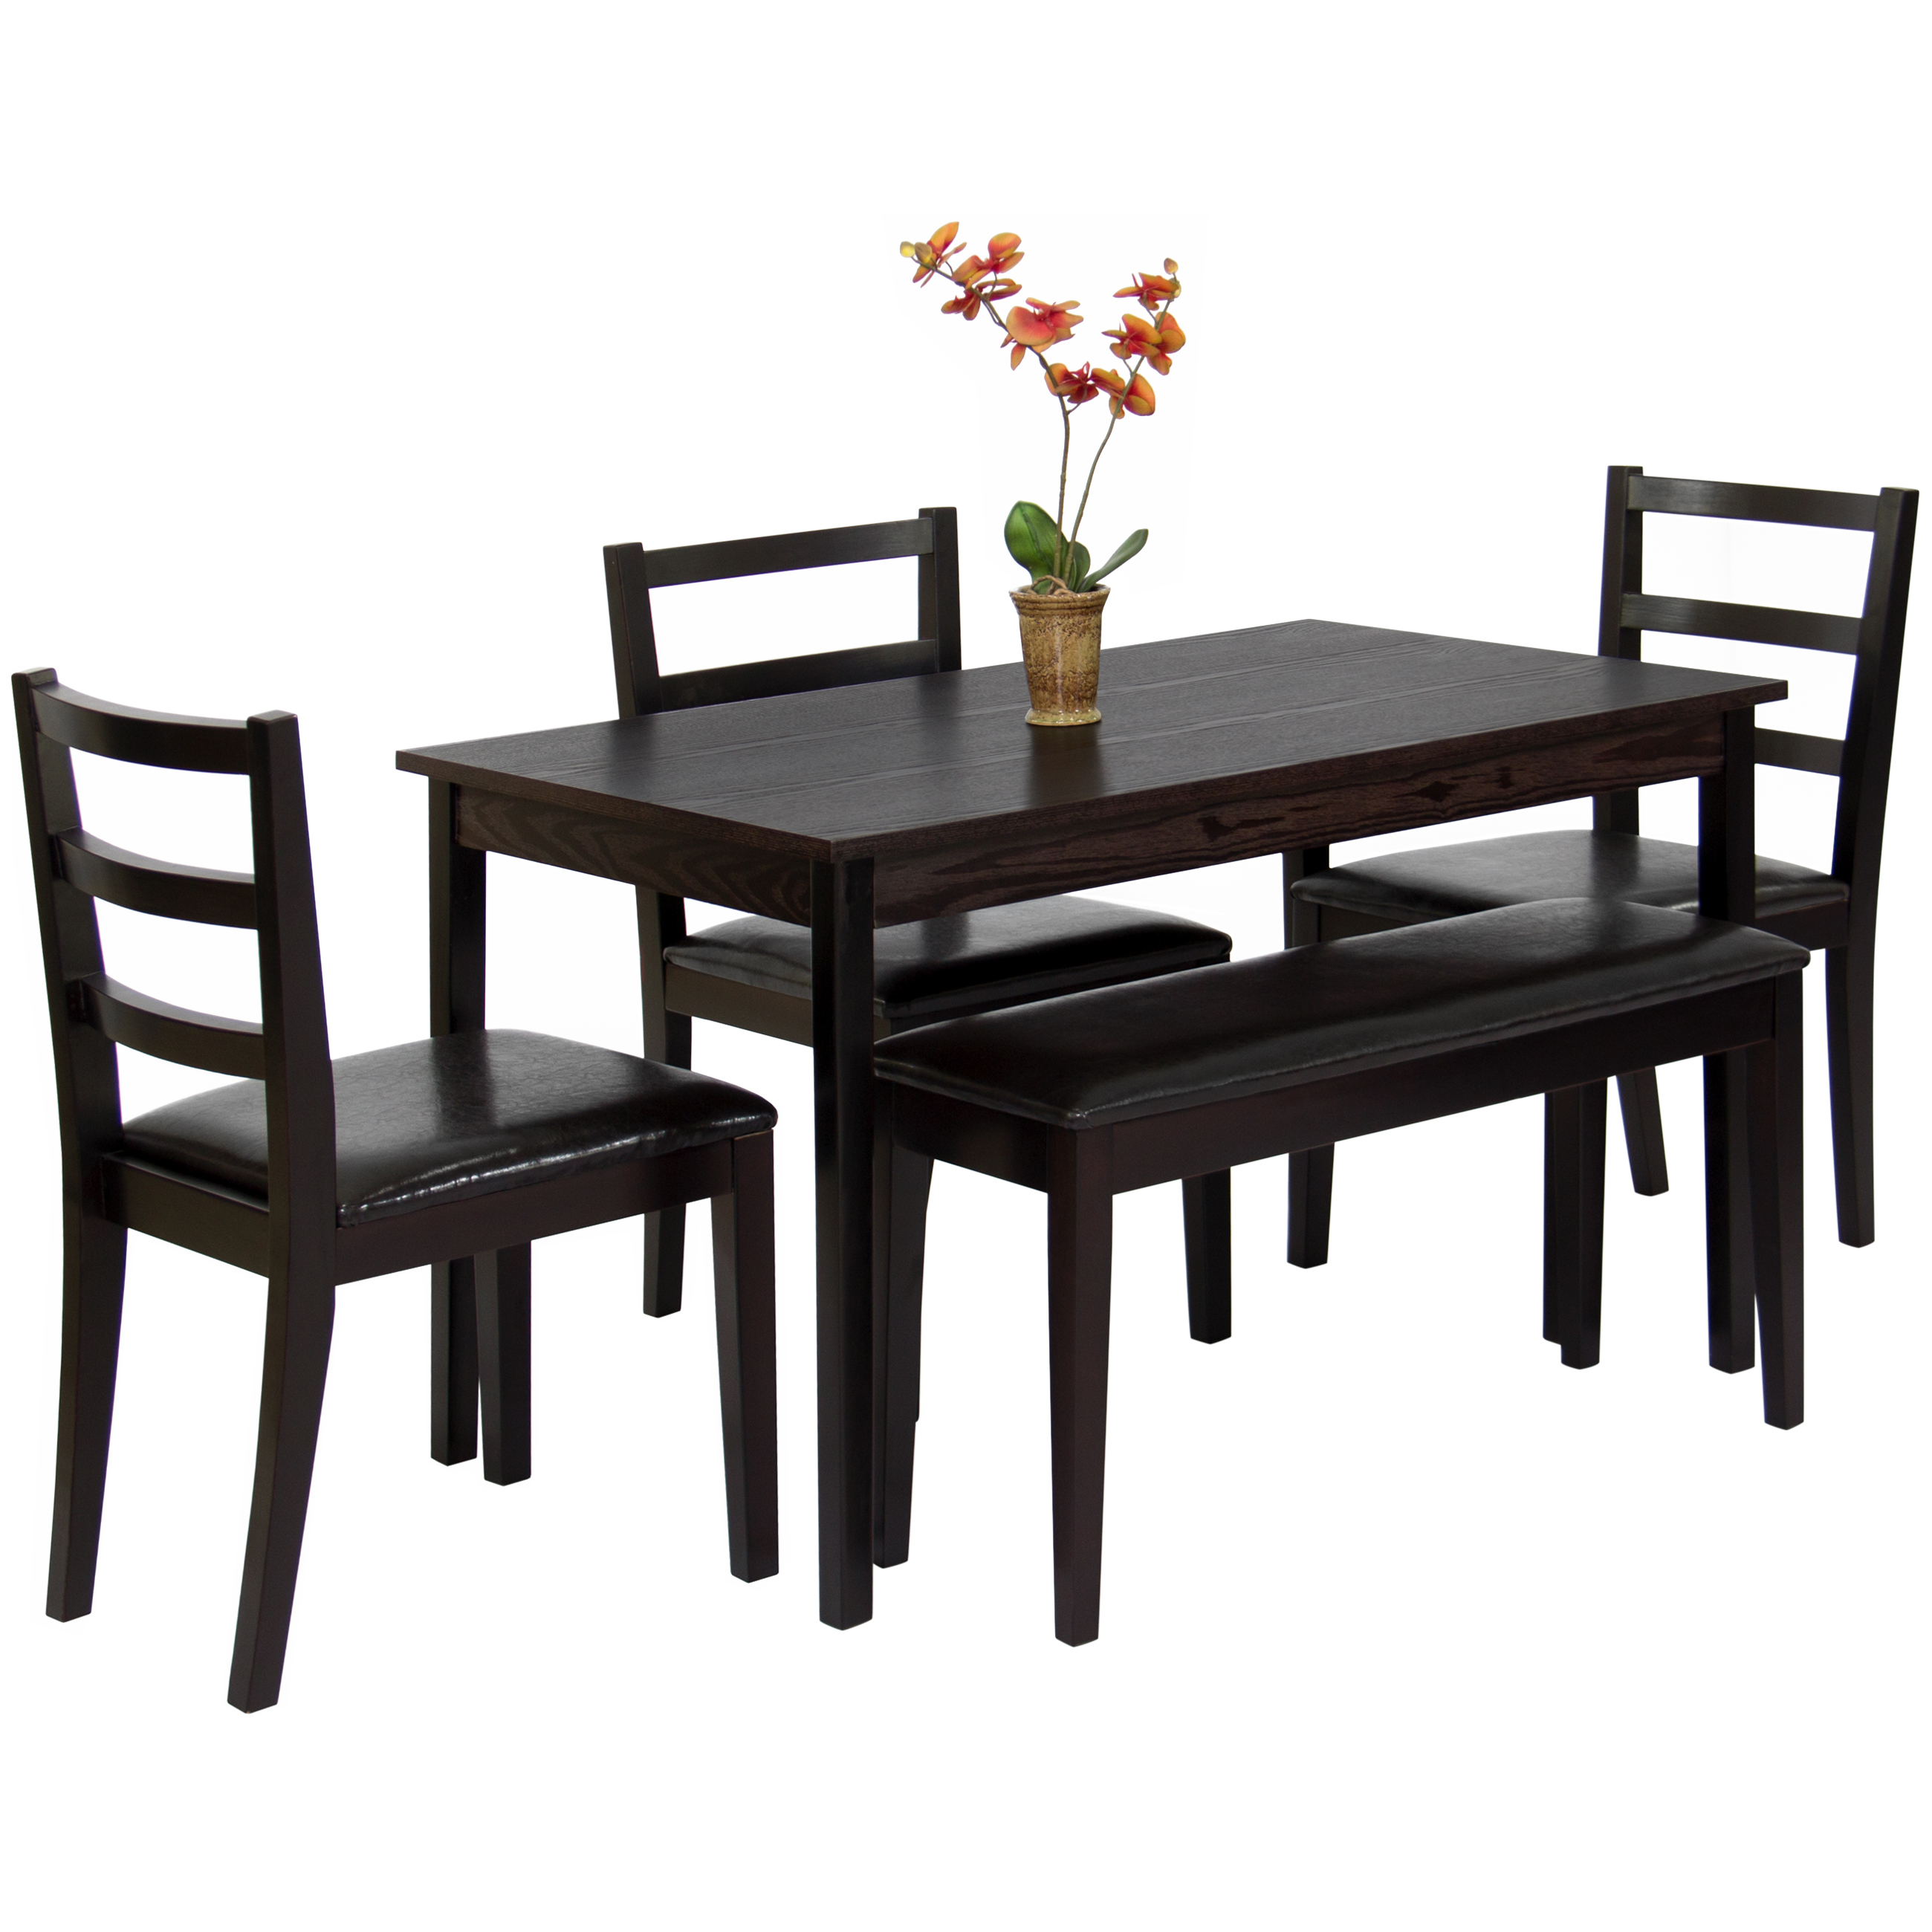 Dining set with bench top faux marble dining table with for 10 piece dining room table sets